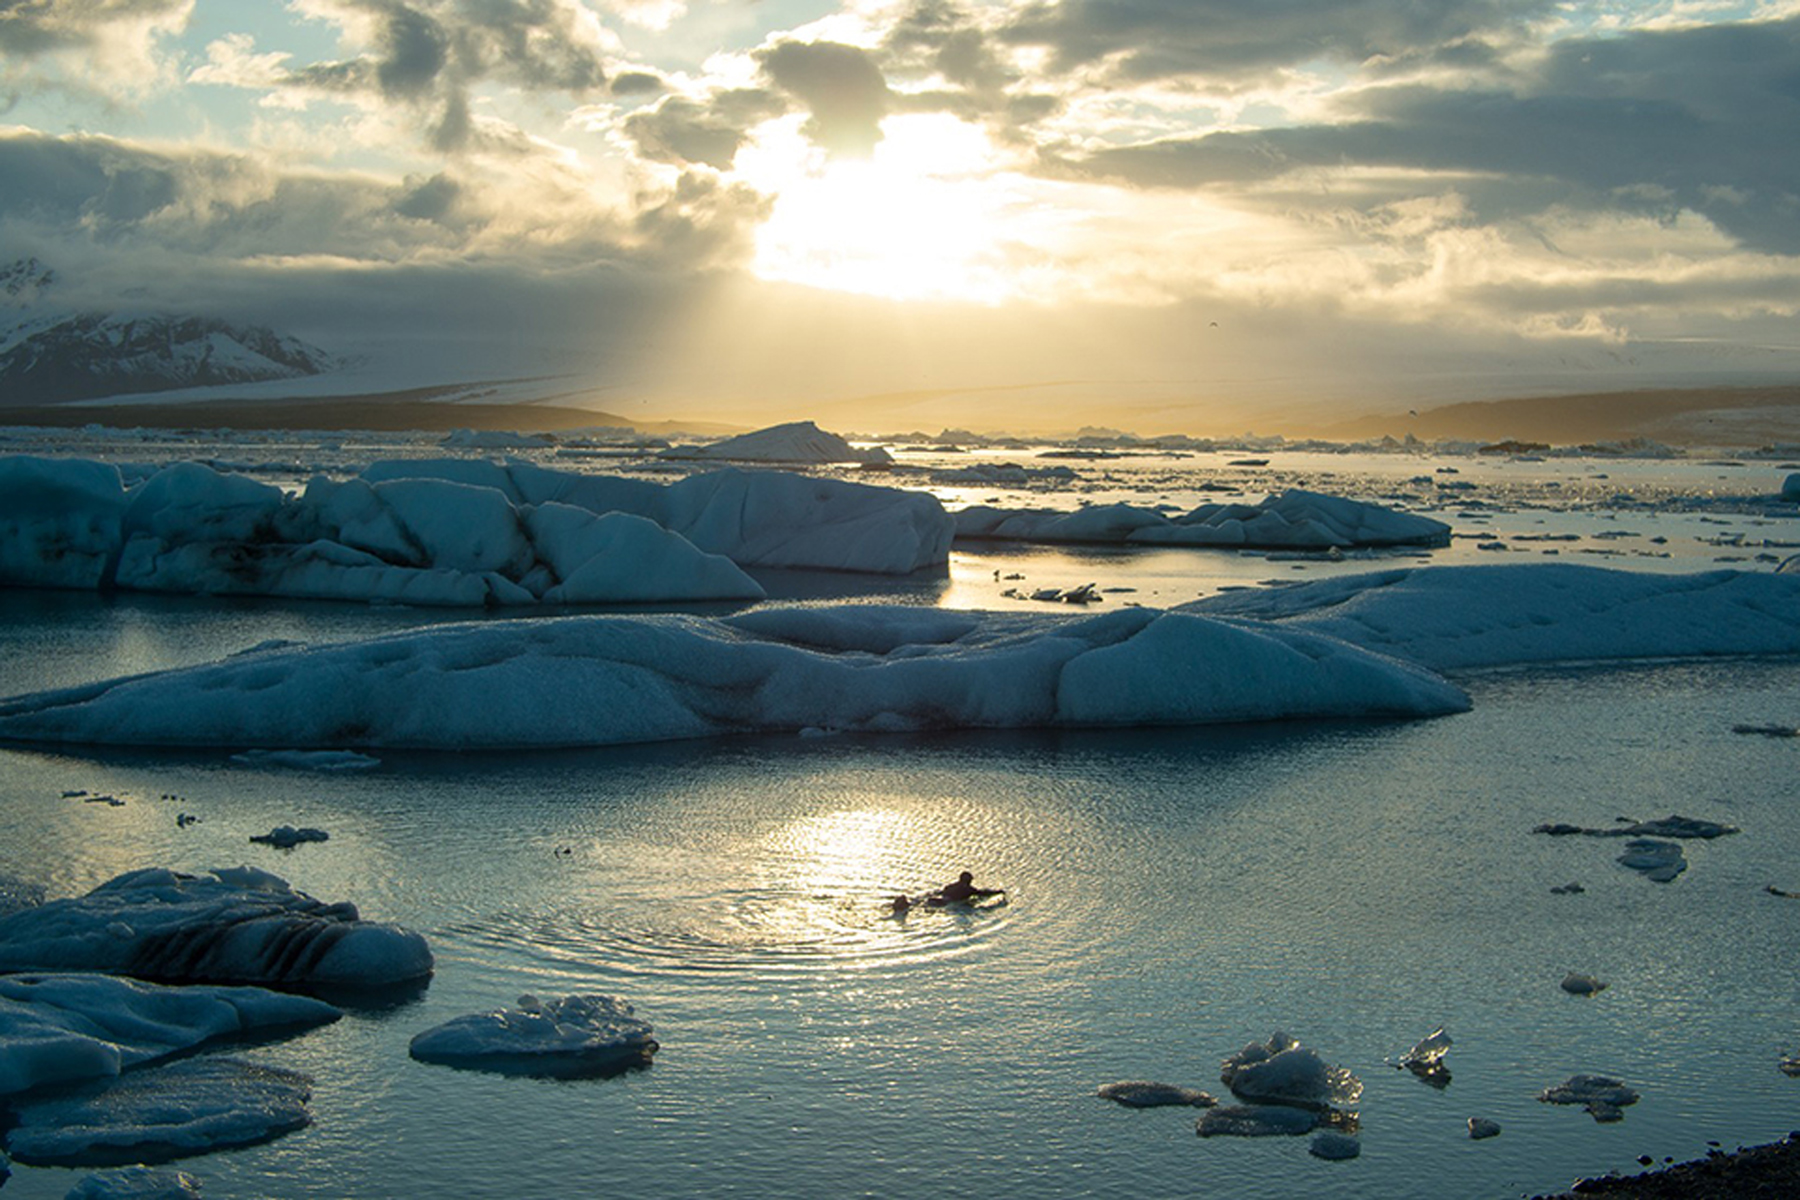 Surfing in Iceland and Russia with Photographer Chris Burkard